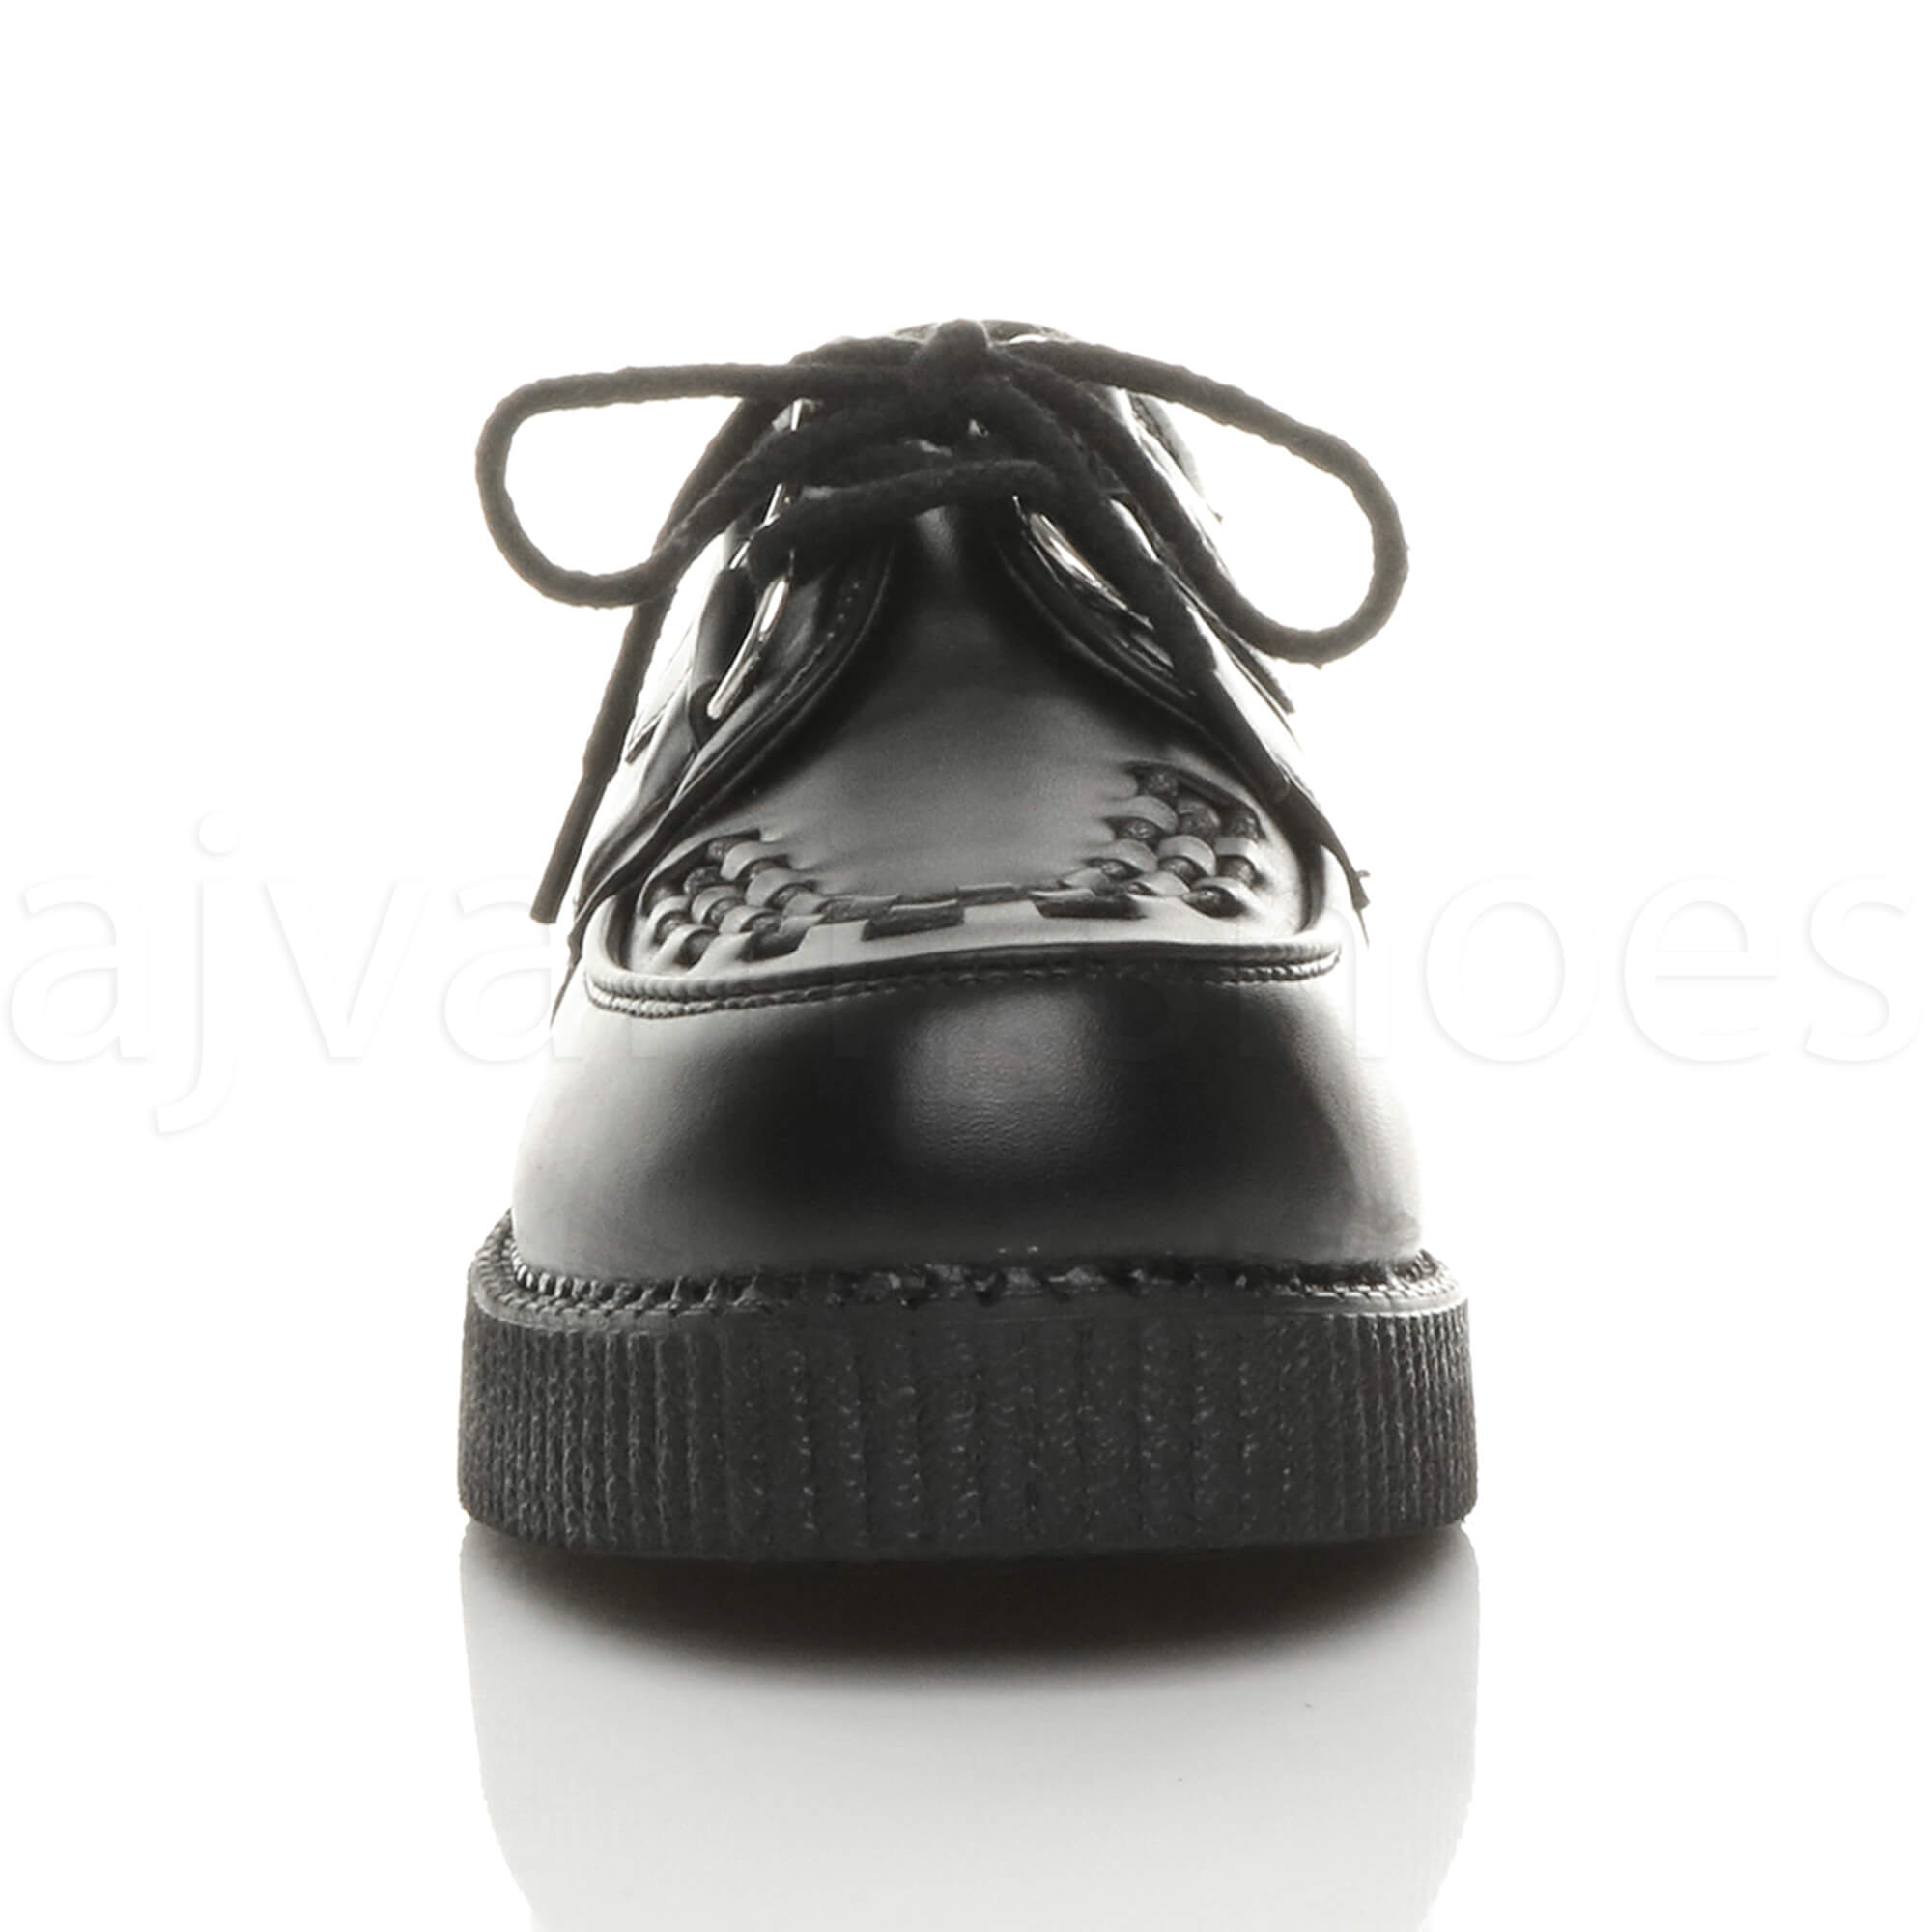 MENS-PLATFORM-WEDGE-LACE-UP-GOTH-PUNK-BROTHEL-CREEPERS-BEETLE-CRUSHERS-SHOES thumbnail 6